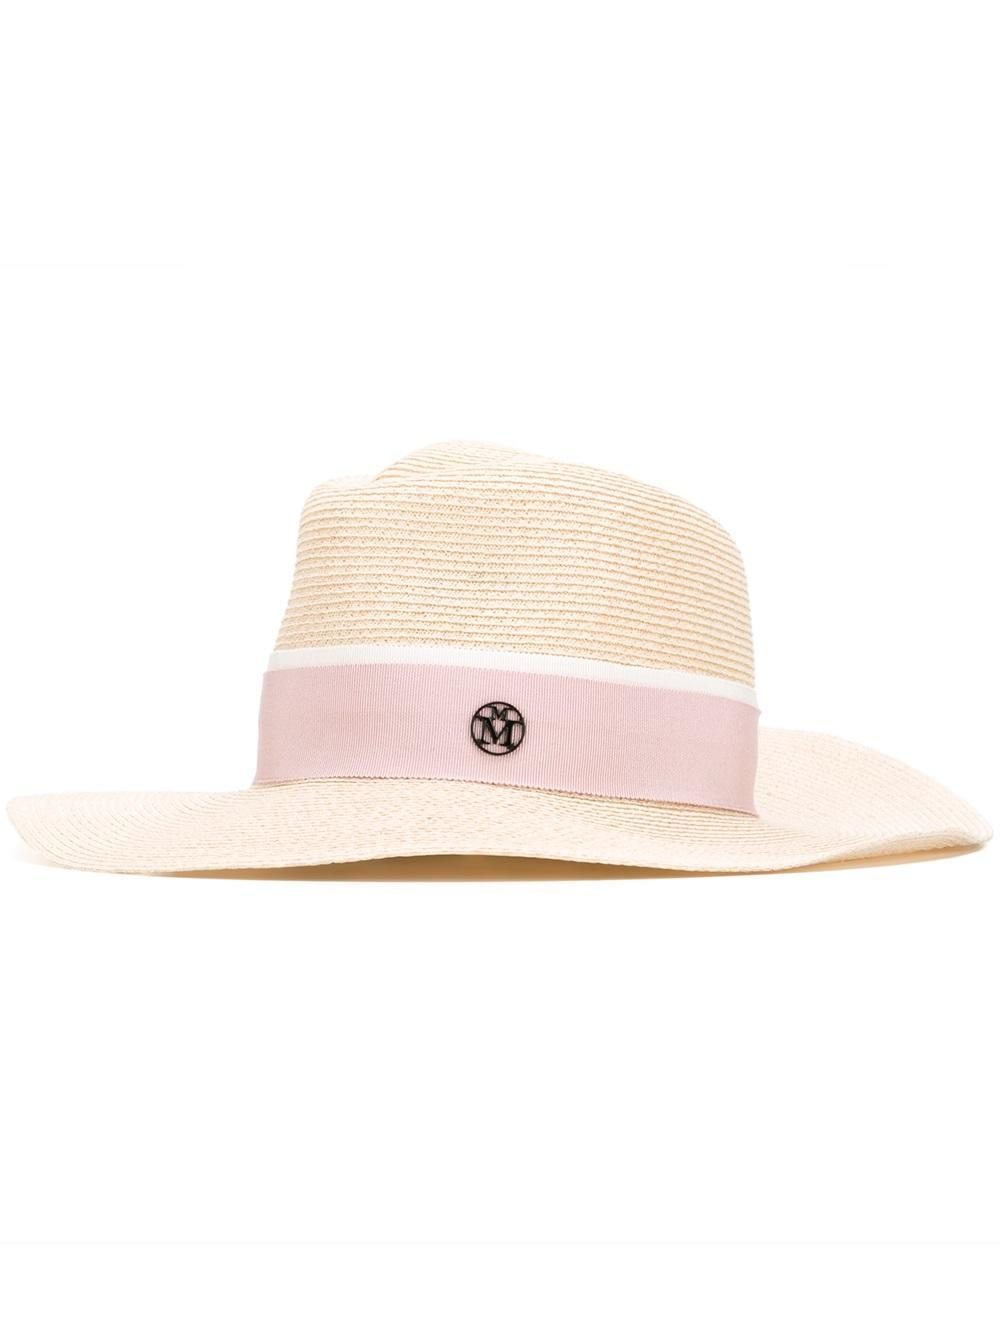 Lyst maison michel 39 charles 39 hat in natural for Maison michel